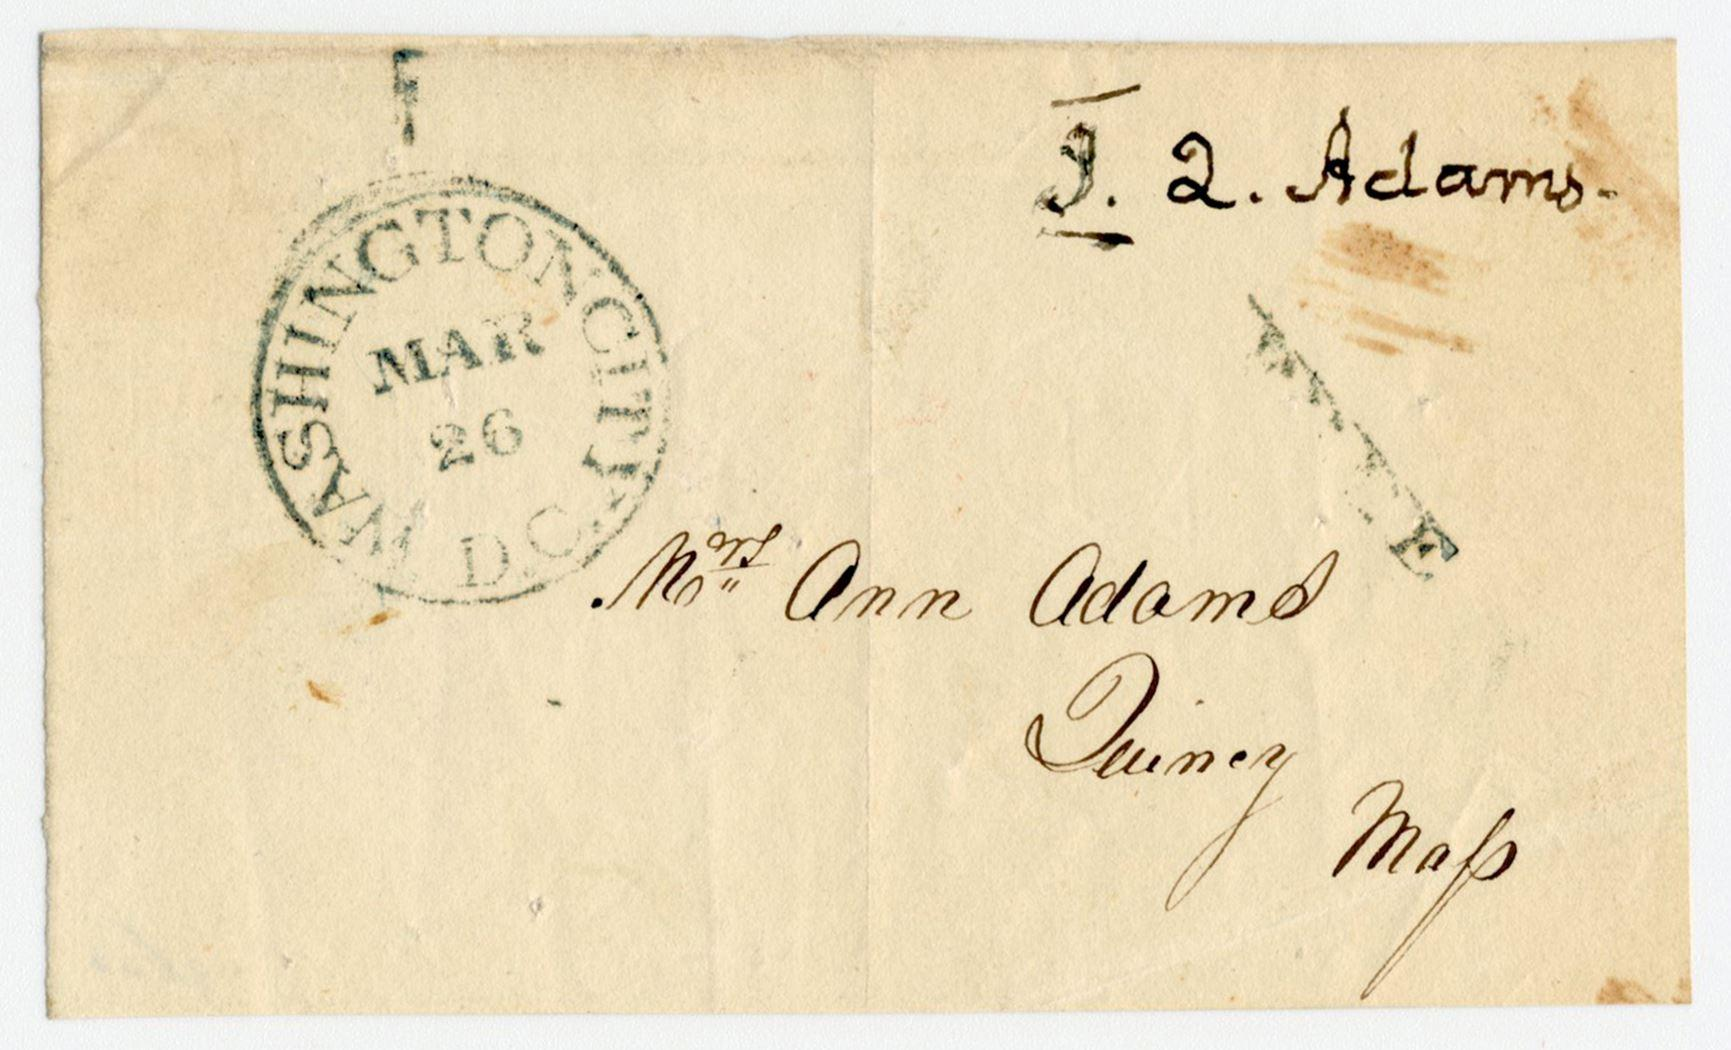 John Quincy Adams Free Franked Envelope, Boldly Signed